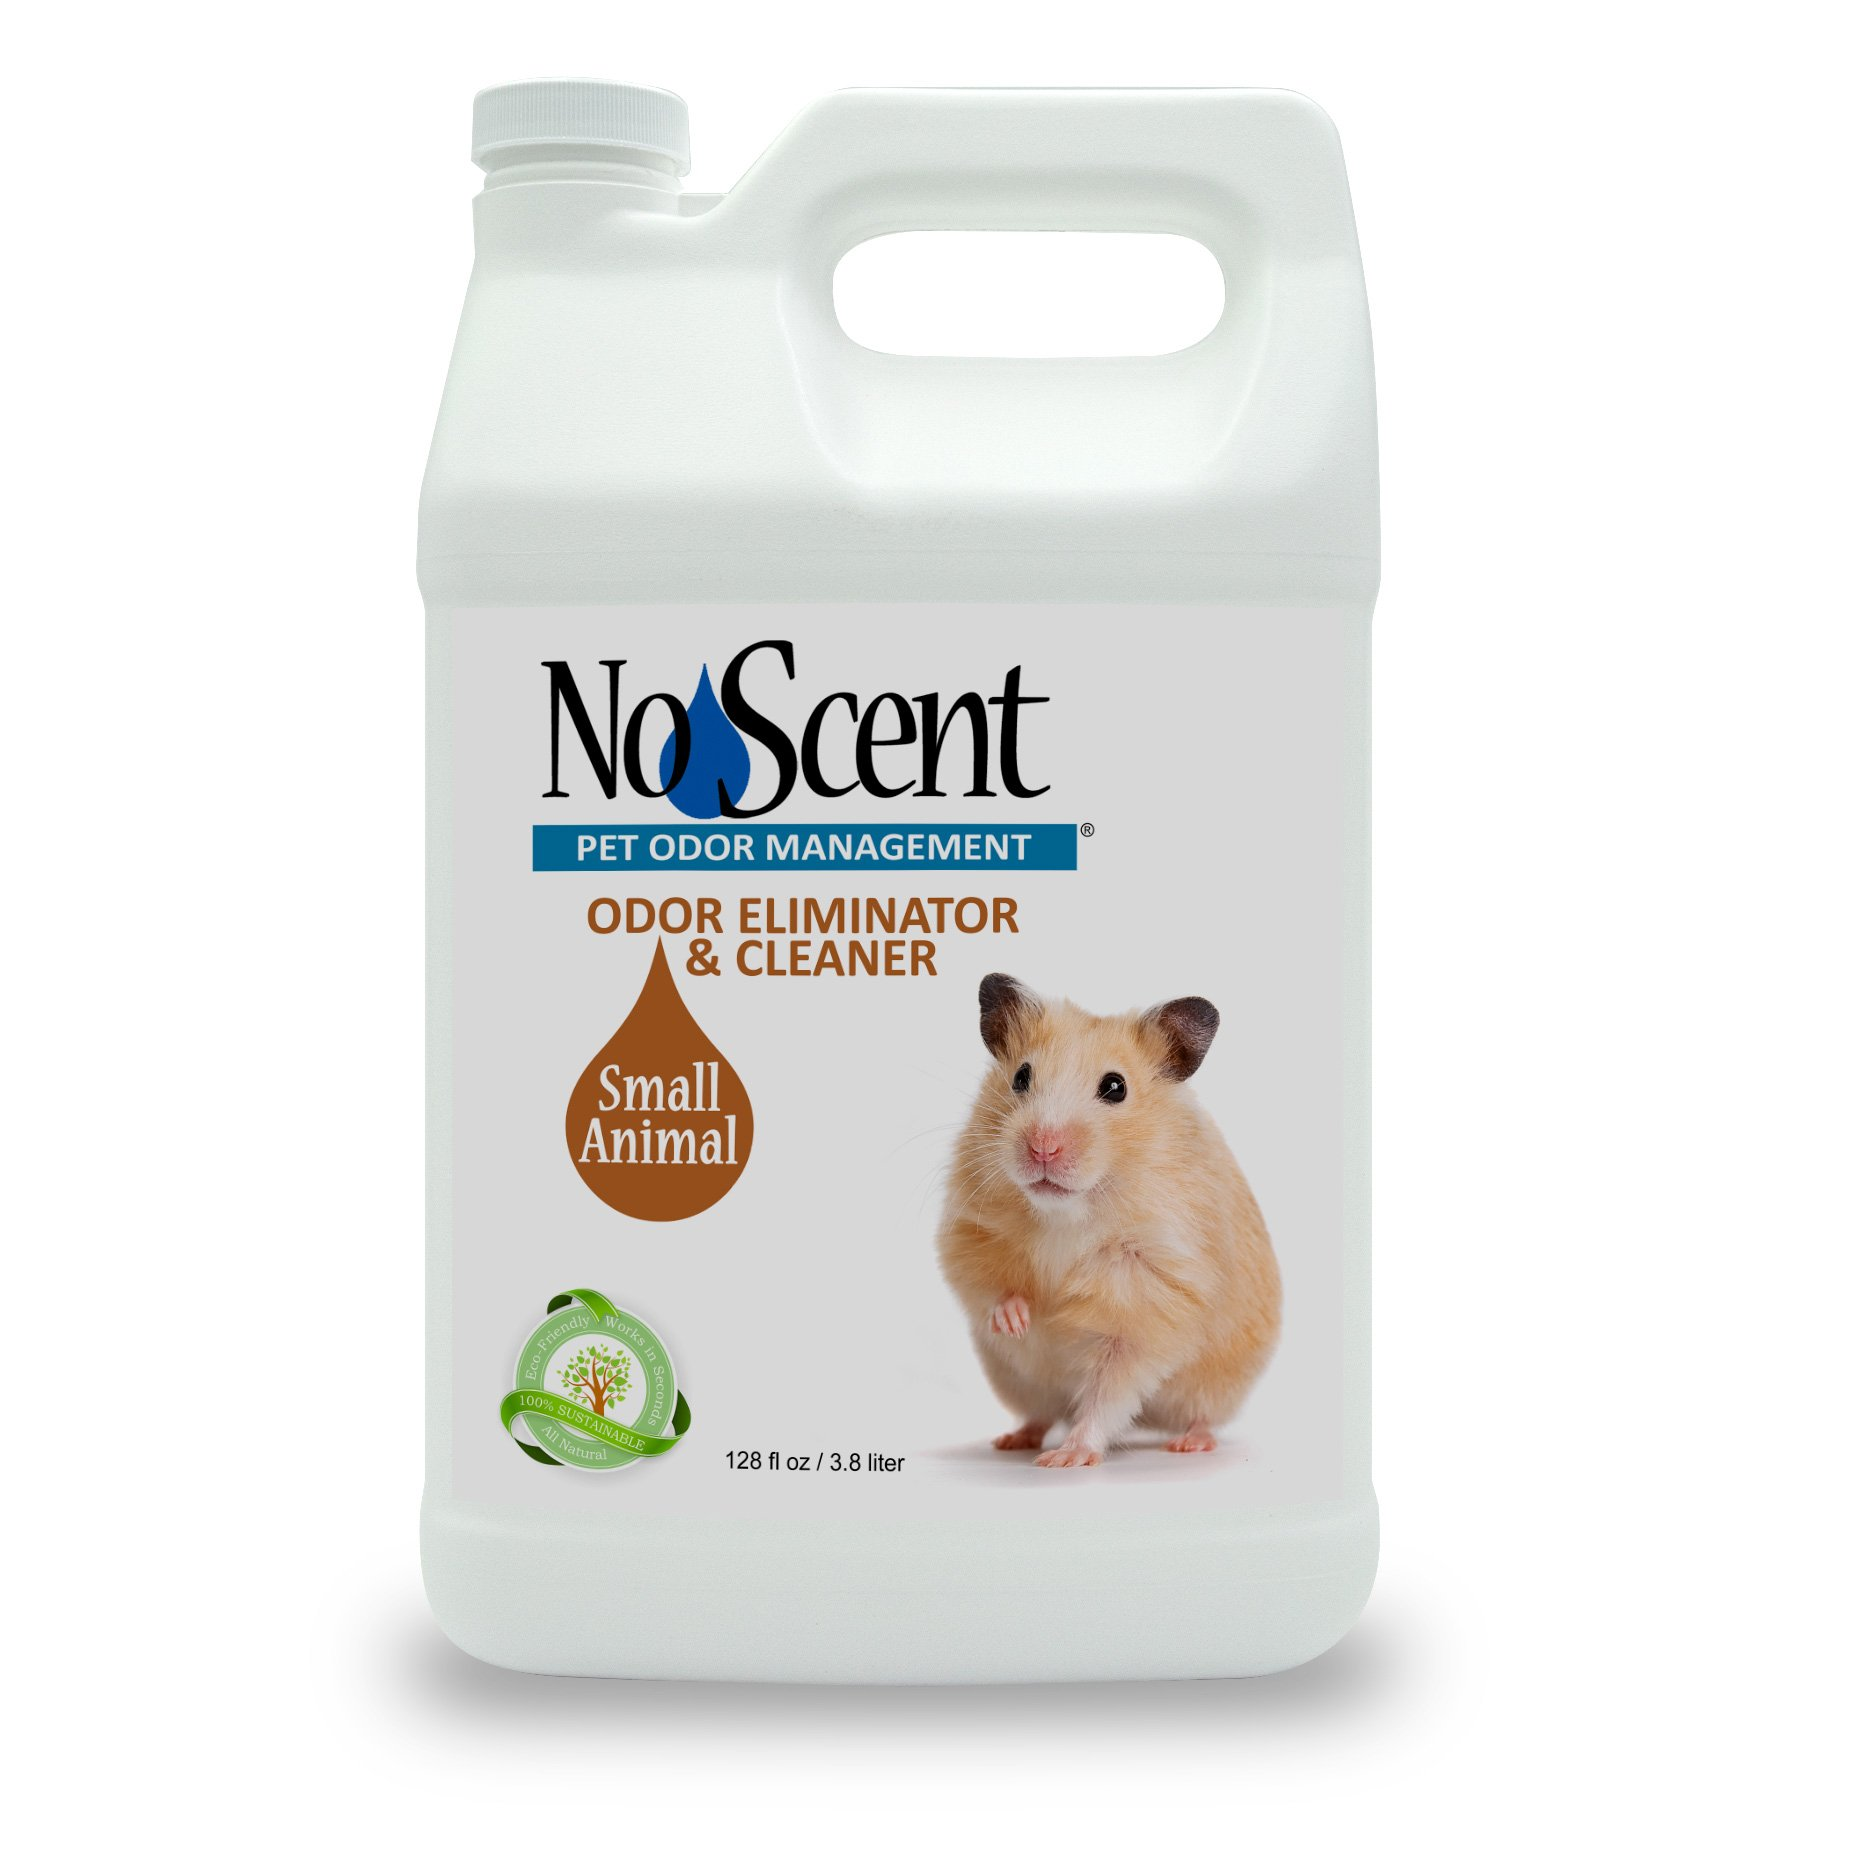 No Scent Small Animal - Professional Pet Waste Odor Eliminator & Cleaner - Safe All Natural Probiotic & Enzyme Formula Smell Remover for Hutches Tanks Enclosures Bedding Toys and Surfaces (1 gal)